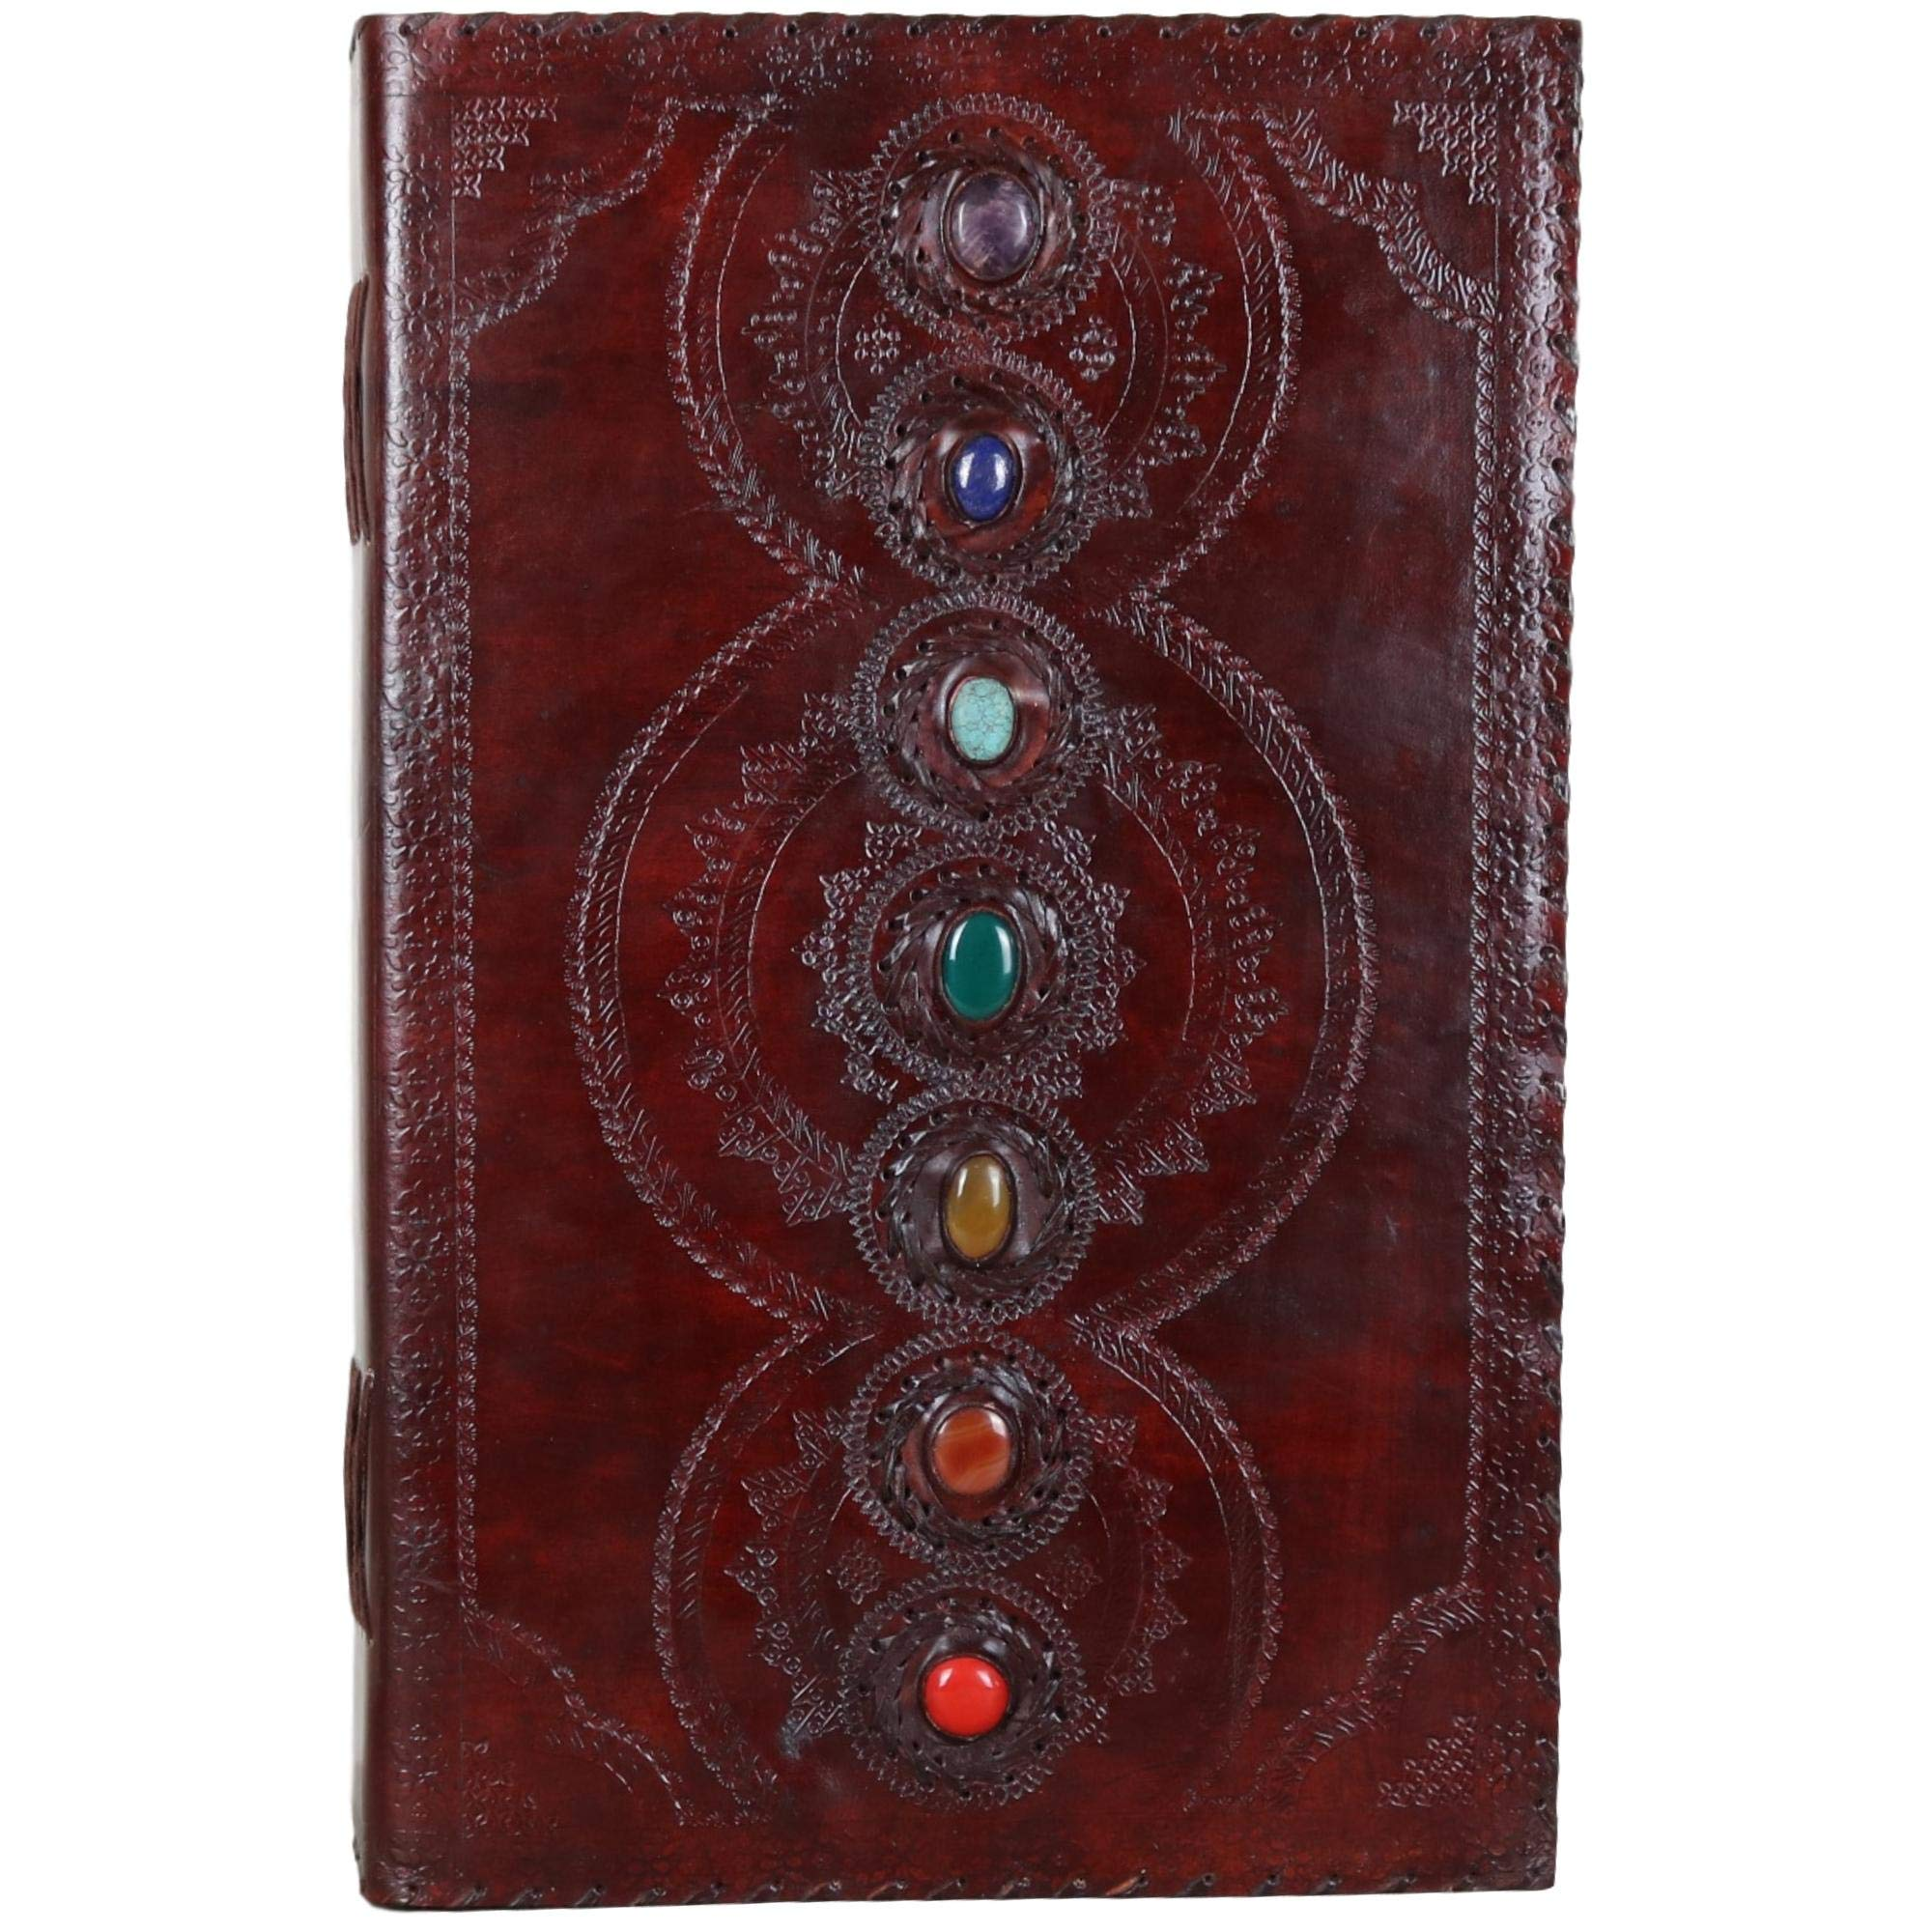 Seven Stone Leather Journal Handmade Notebook Unlined Blank 600 Pages 13 1/2 X 22 inches by  (Image #2)